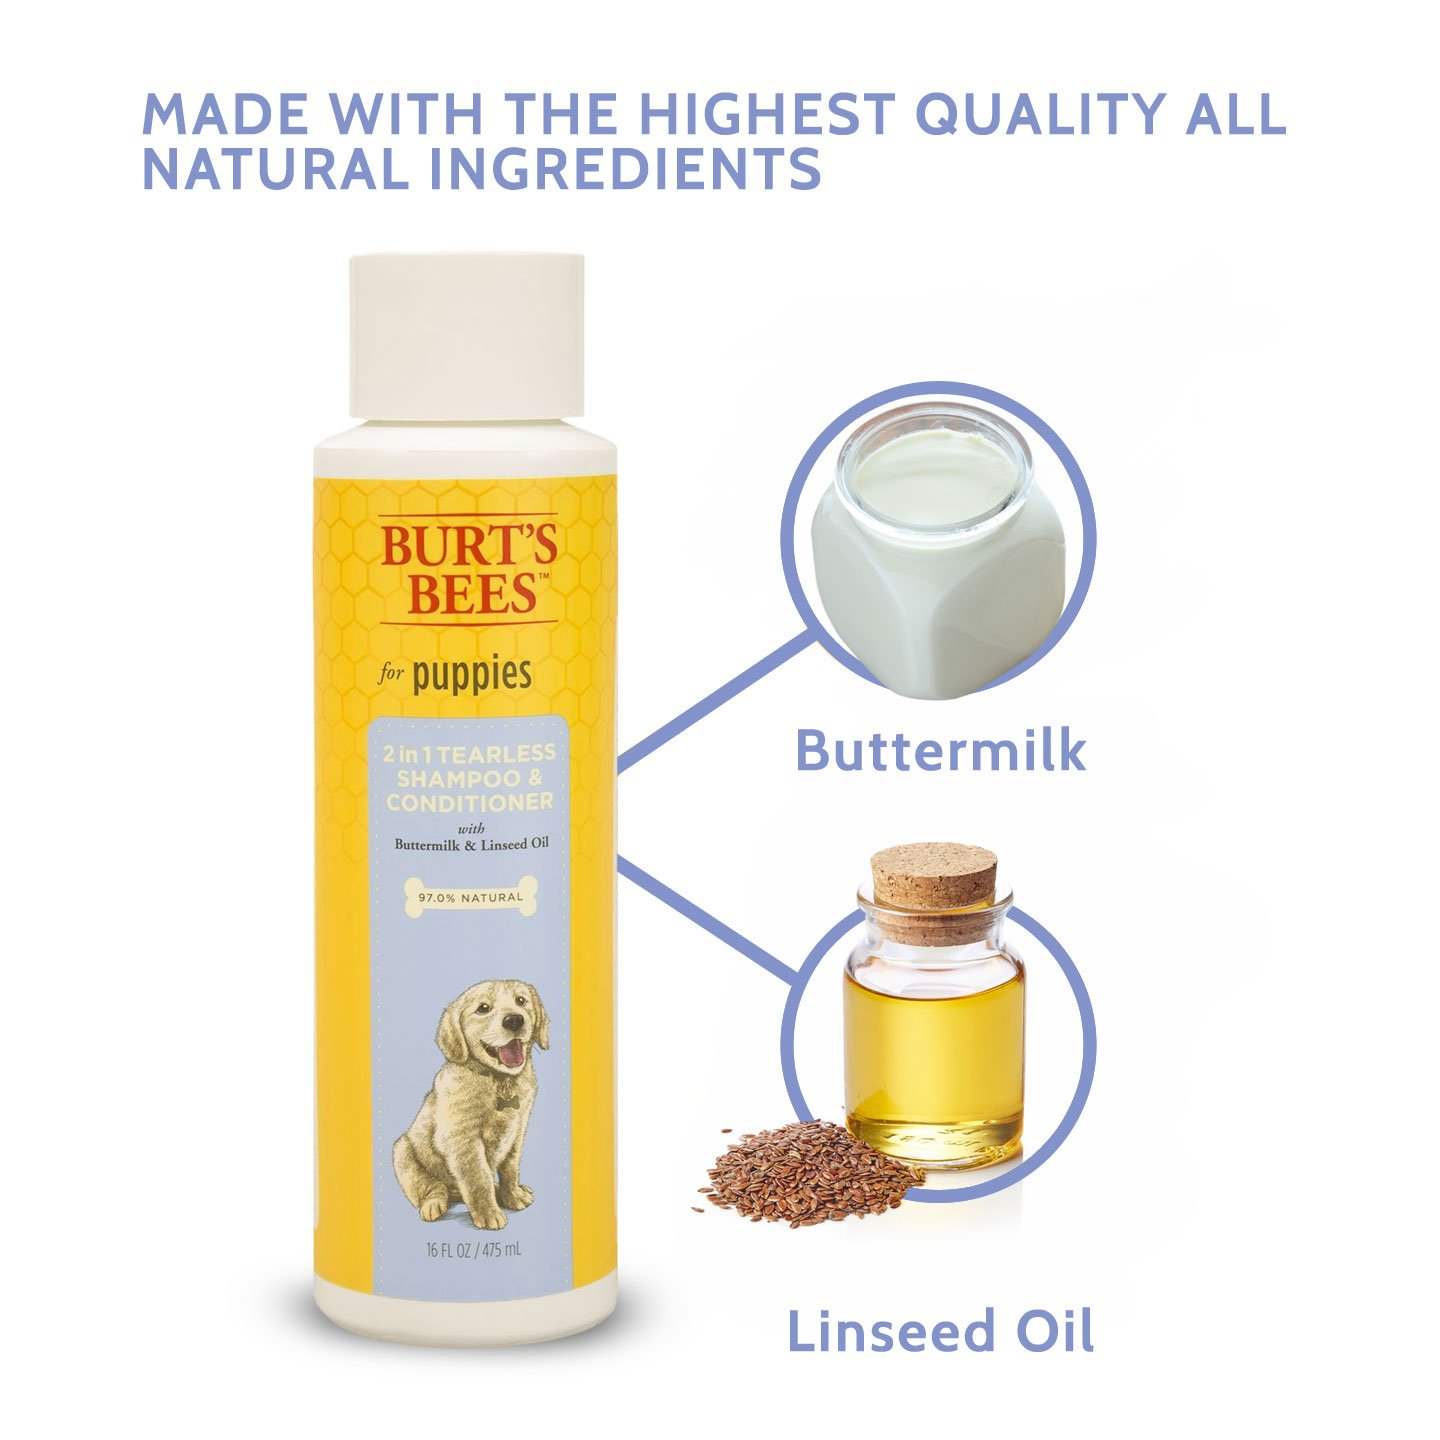 Burt's Bees for Dogs All-Natural Tearless 2 in 1 Shampoo and Conditioner | Best Shampoo & Conditioner for All Dogs and Puppies, Pack of 2